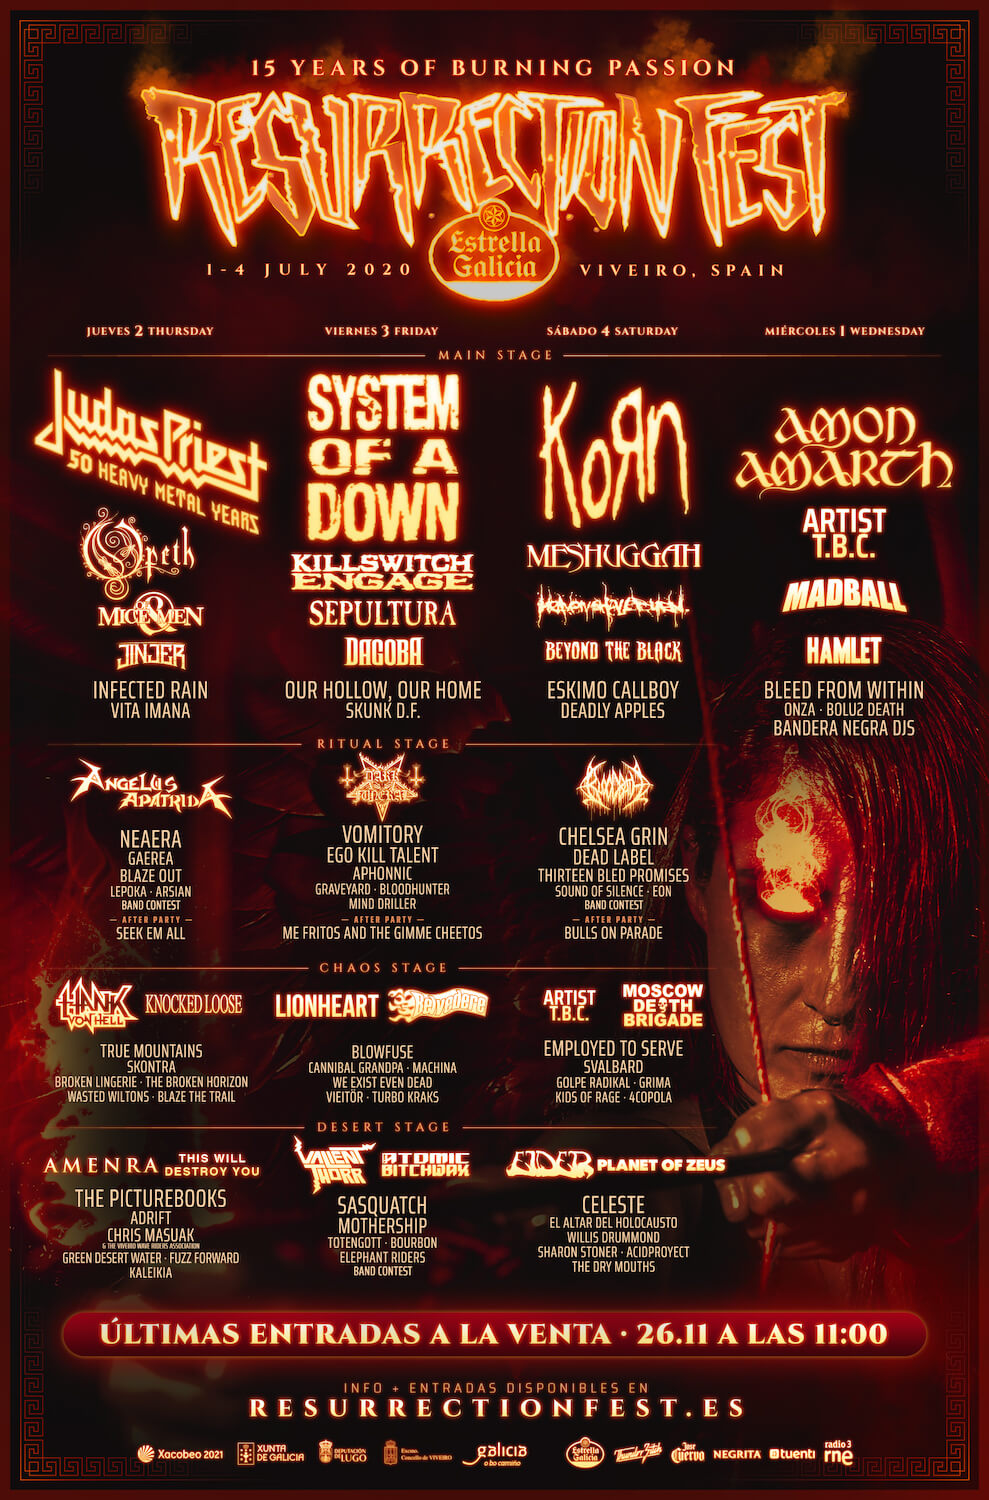 Resurrection Fest 2020 - Cartel por días